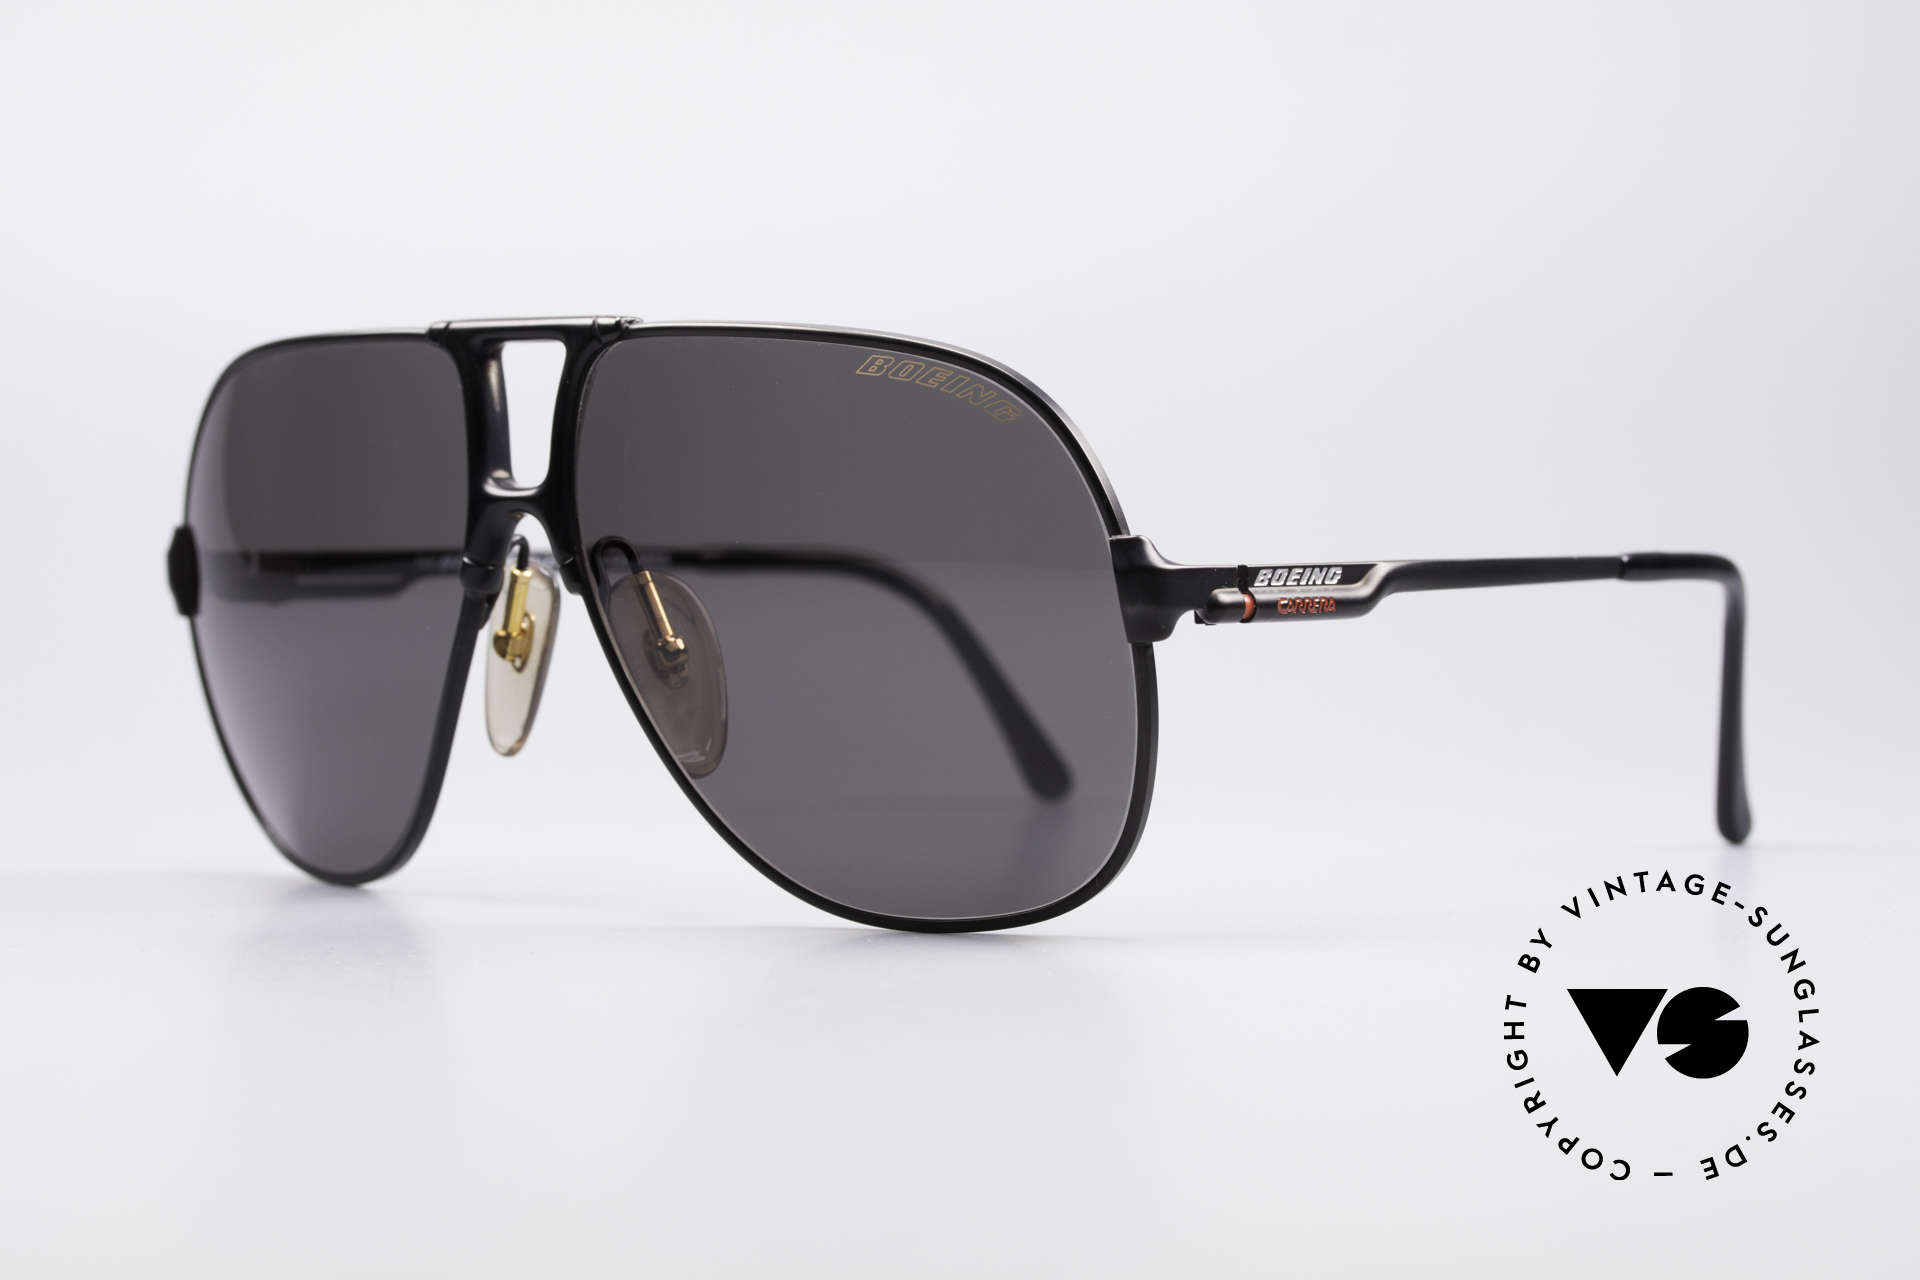 Boeing 5700 Vintage 80's Pilots Shades, hybrid between functionality, quality and lifestyle, Made for Men and Women